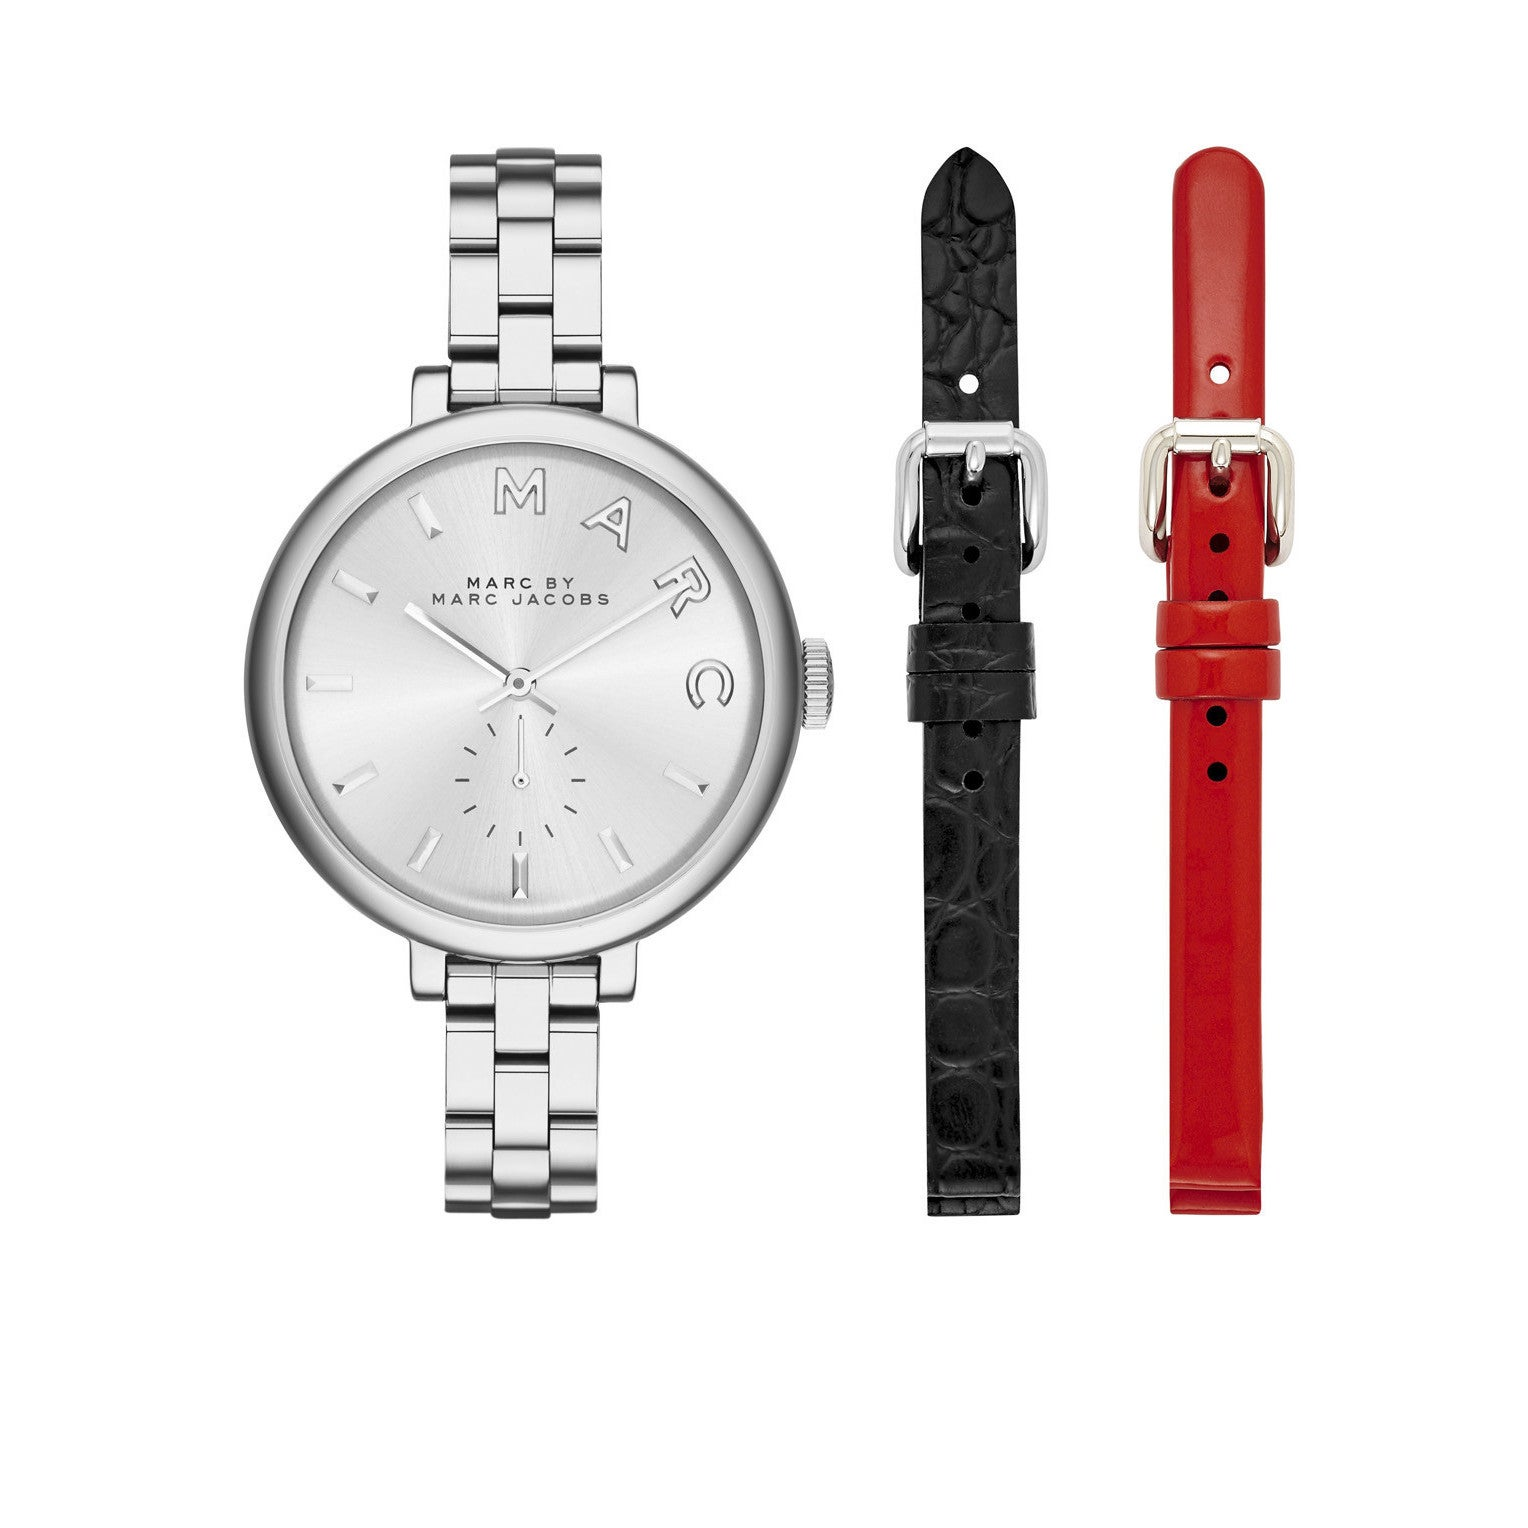 0539587e50d1a Shop Marc By Marc Jacobs Women's MJ9722 Sally Silver Dial Stainless Steel  Bracelet Watch - Free Shipping Today - Overstock - 11324321